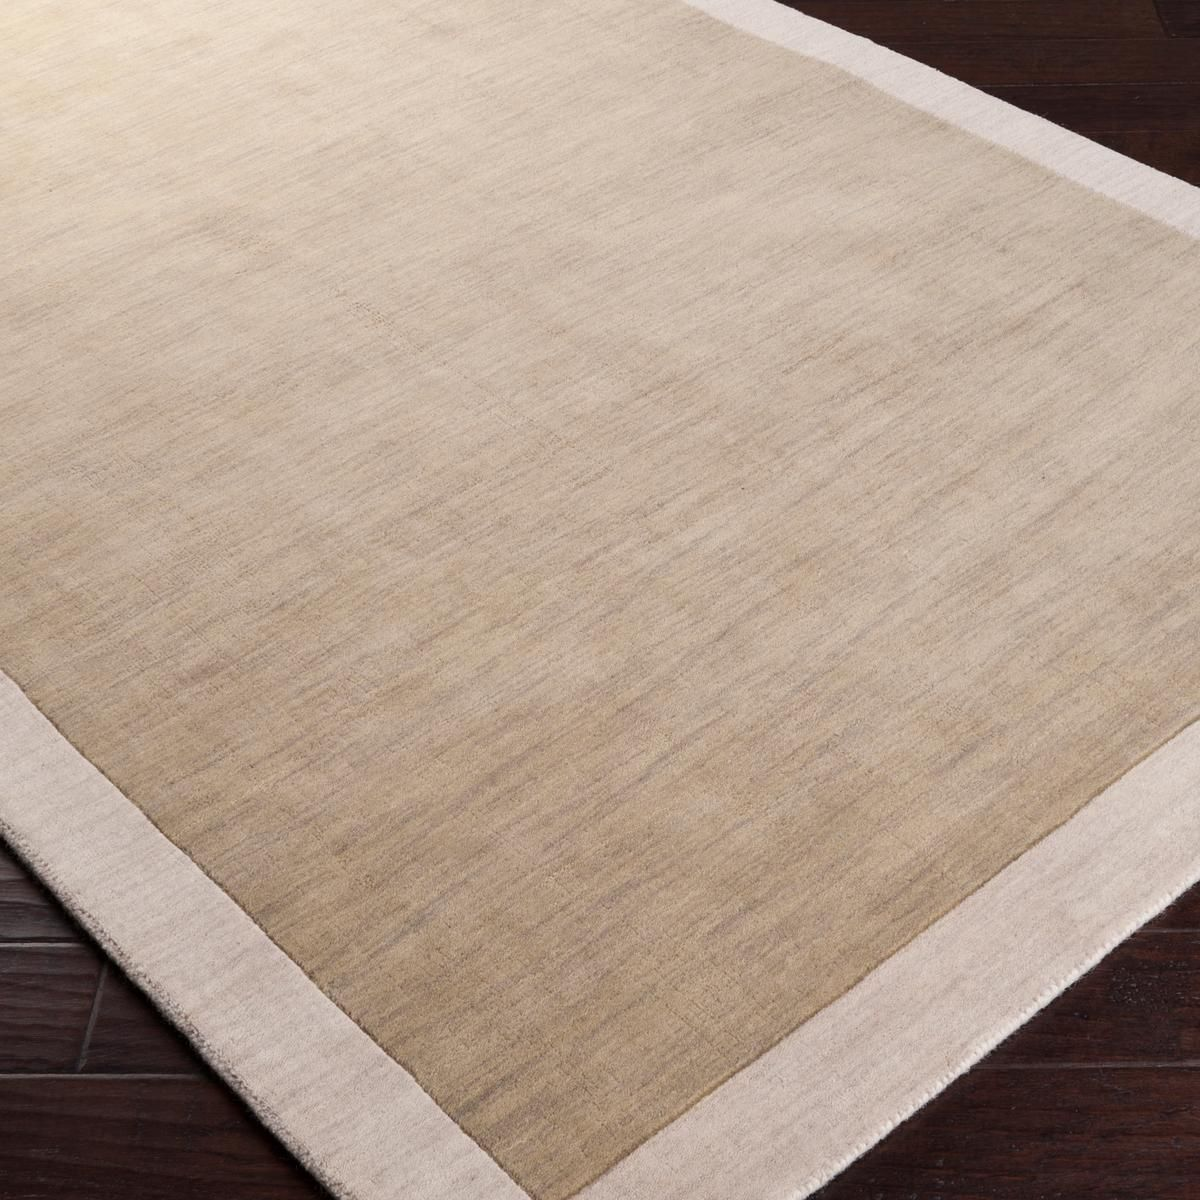 City Hues Solid Bordered Rug Soft Stylish Rugs Rugs Office